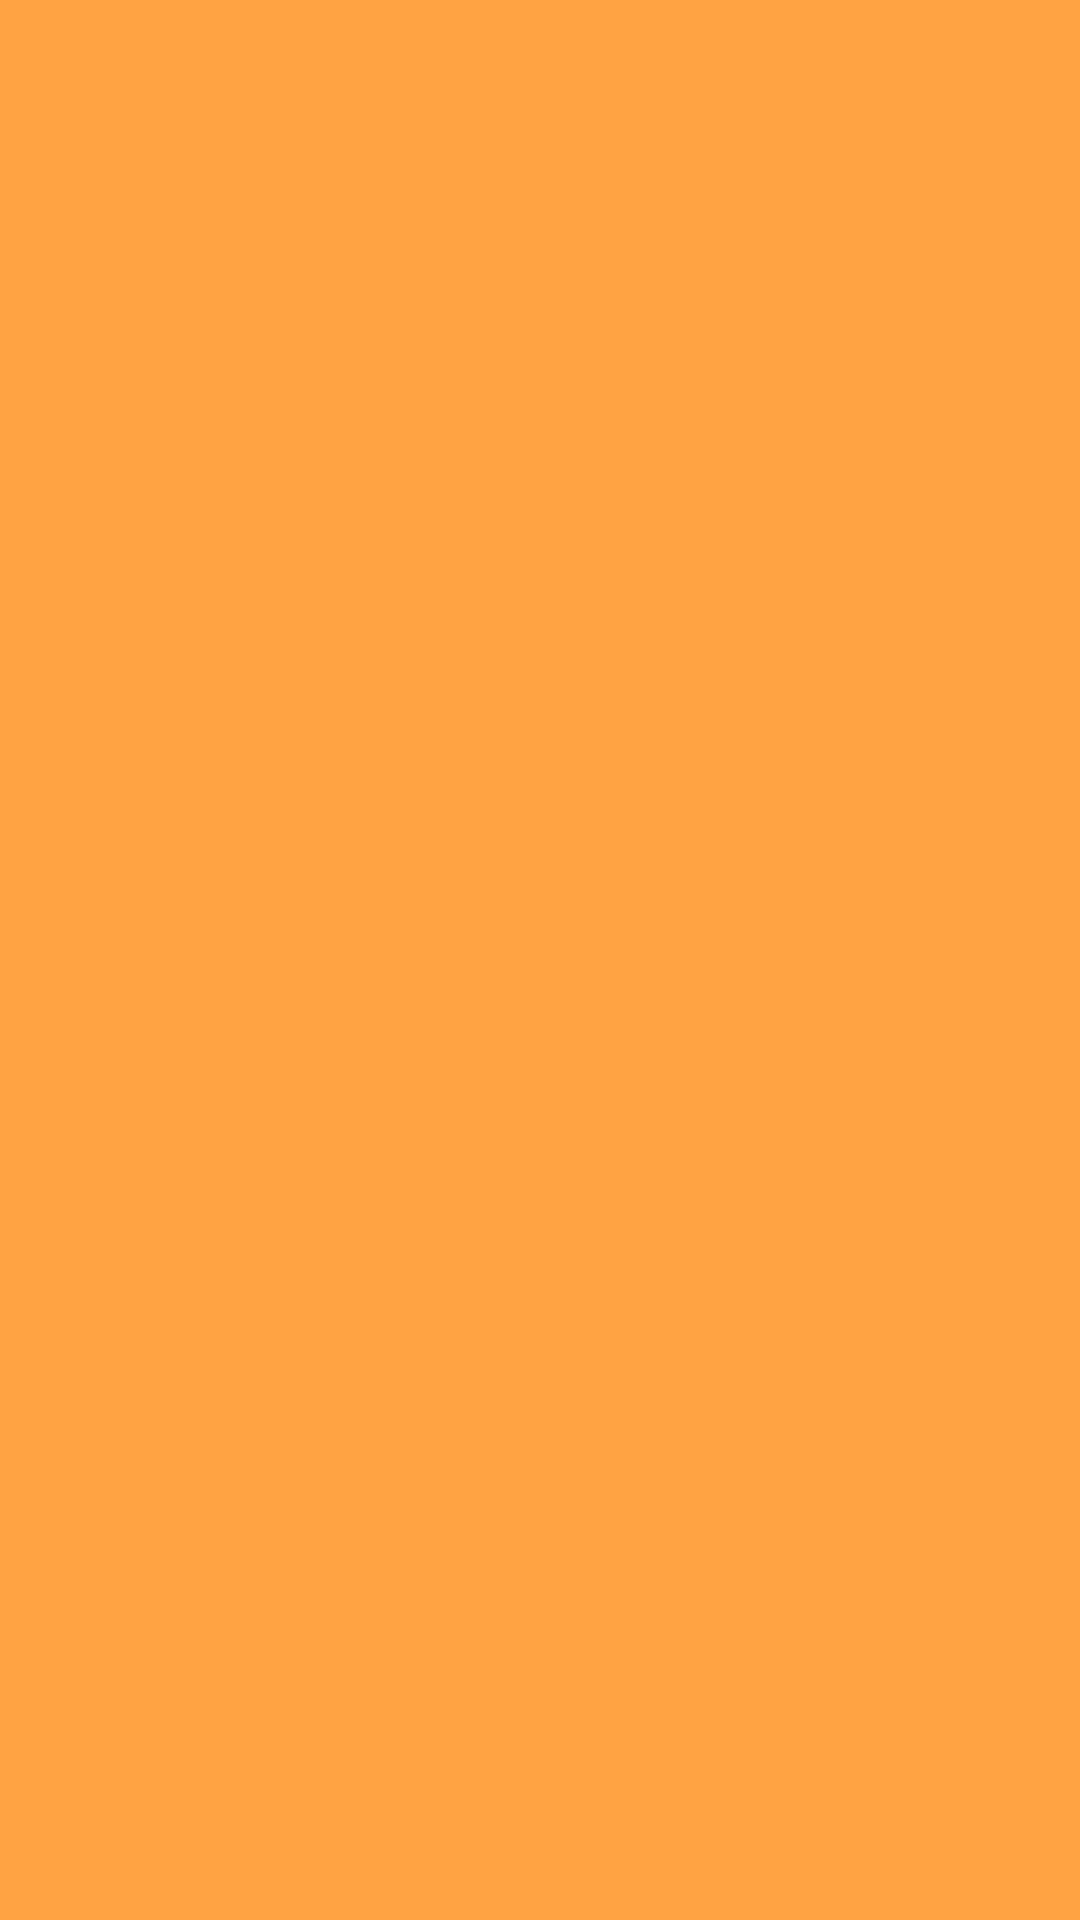 1080x1920 Neon Carrot Solid Color Background